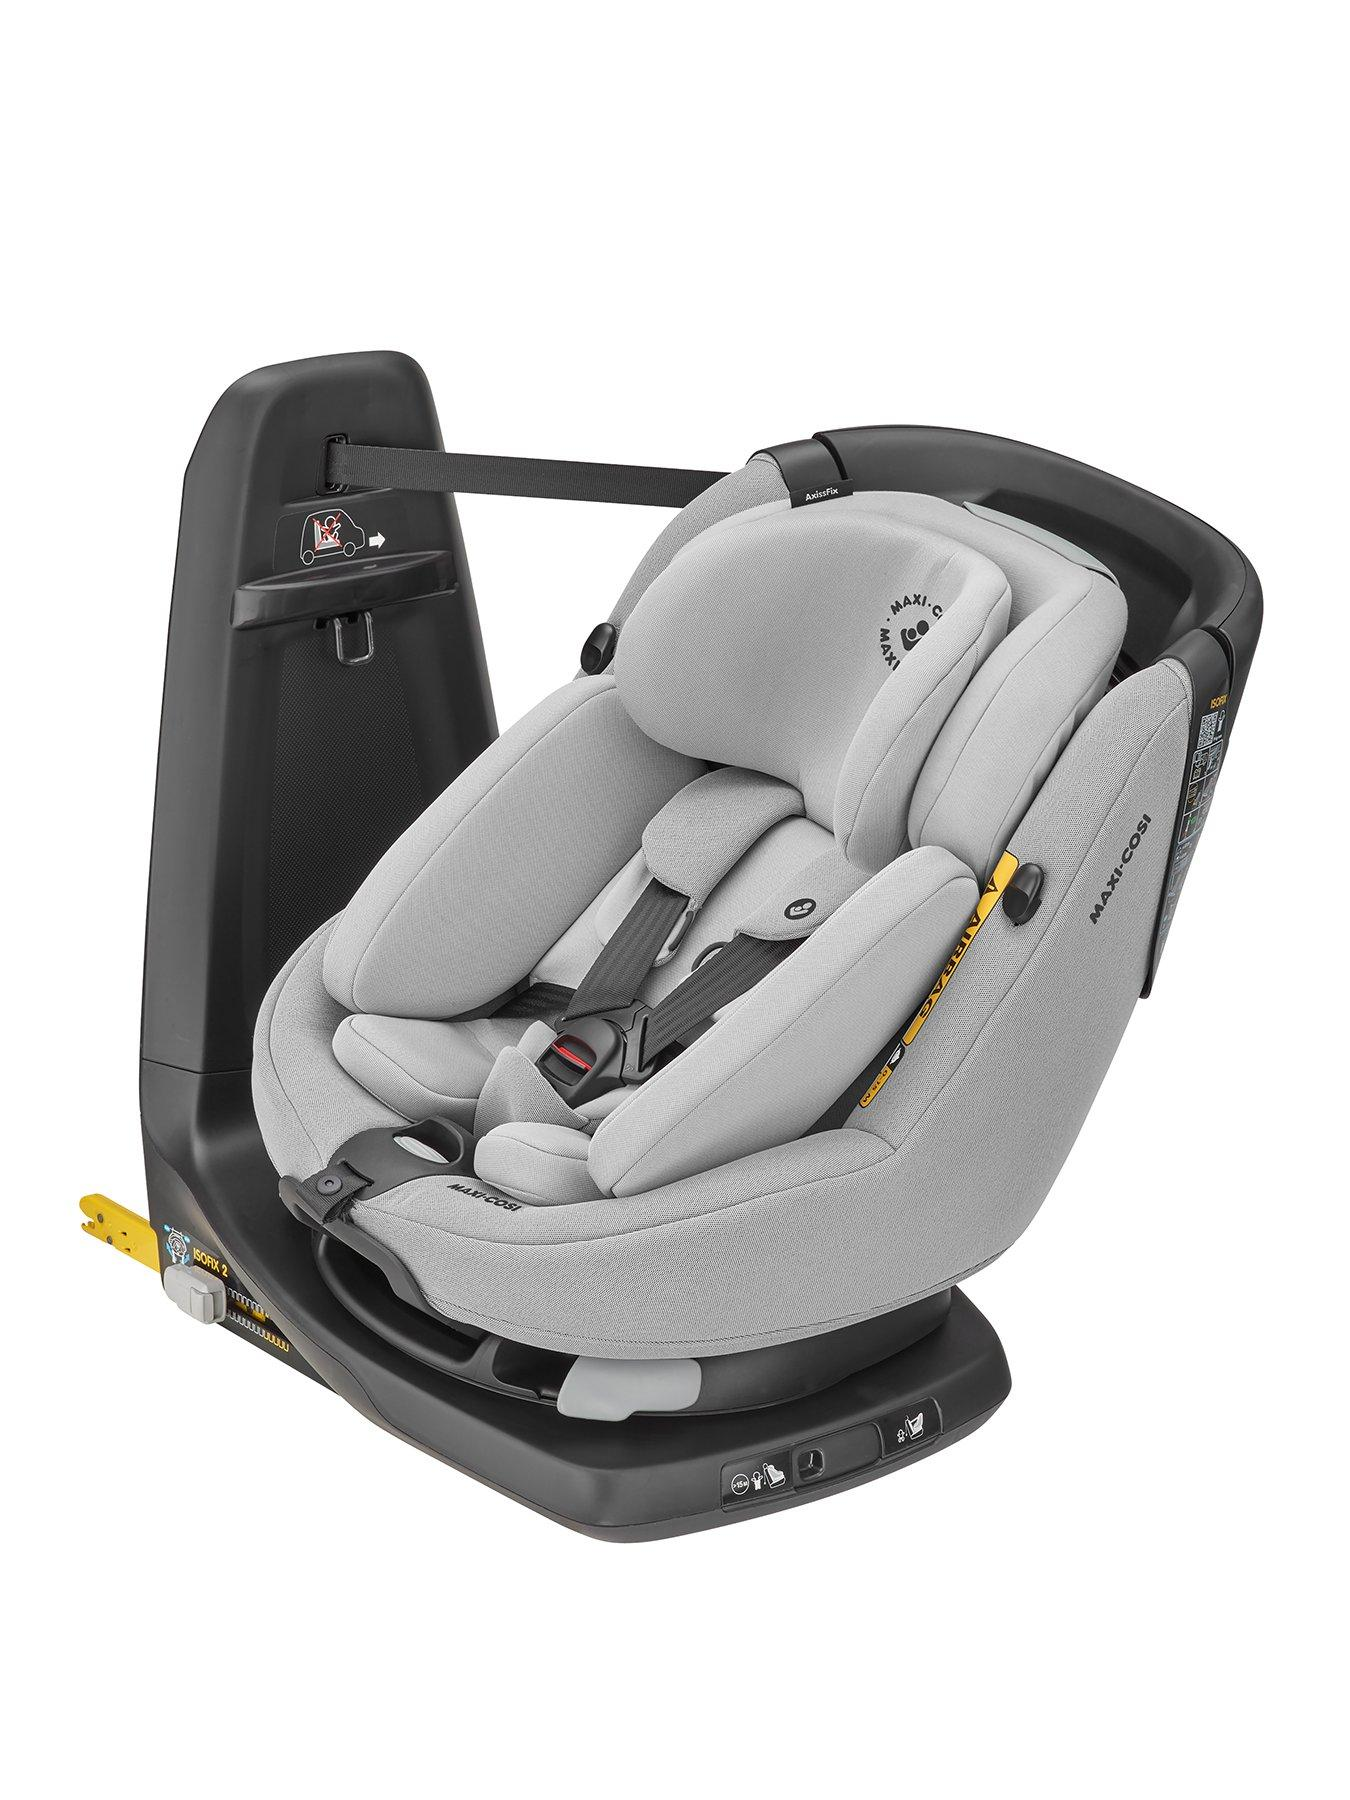 Maxi-cosi | Car seats | Child \u0026 baby